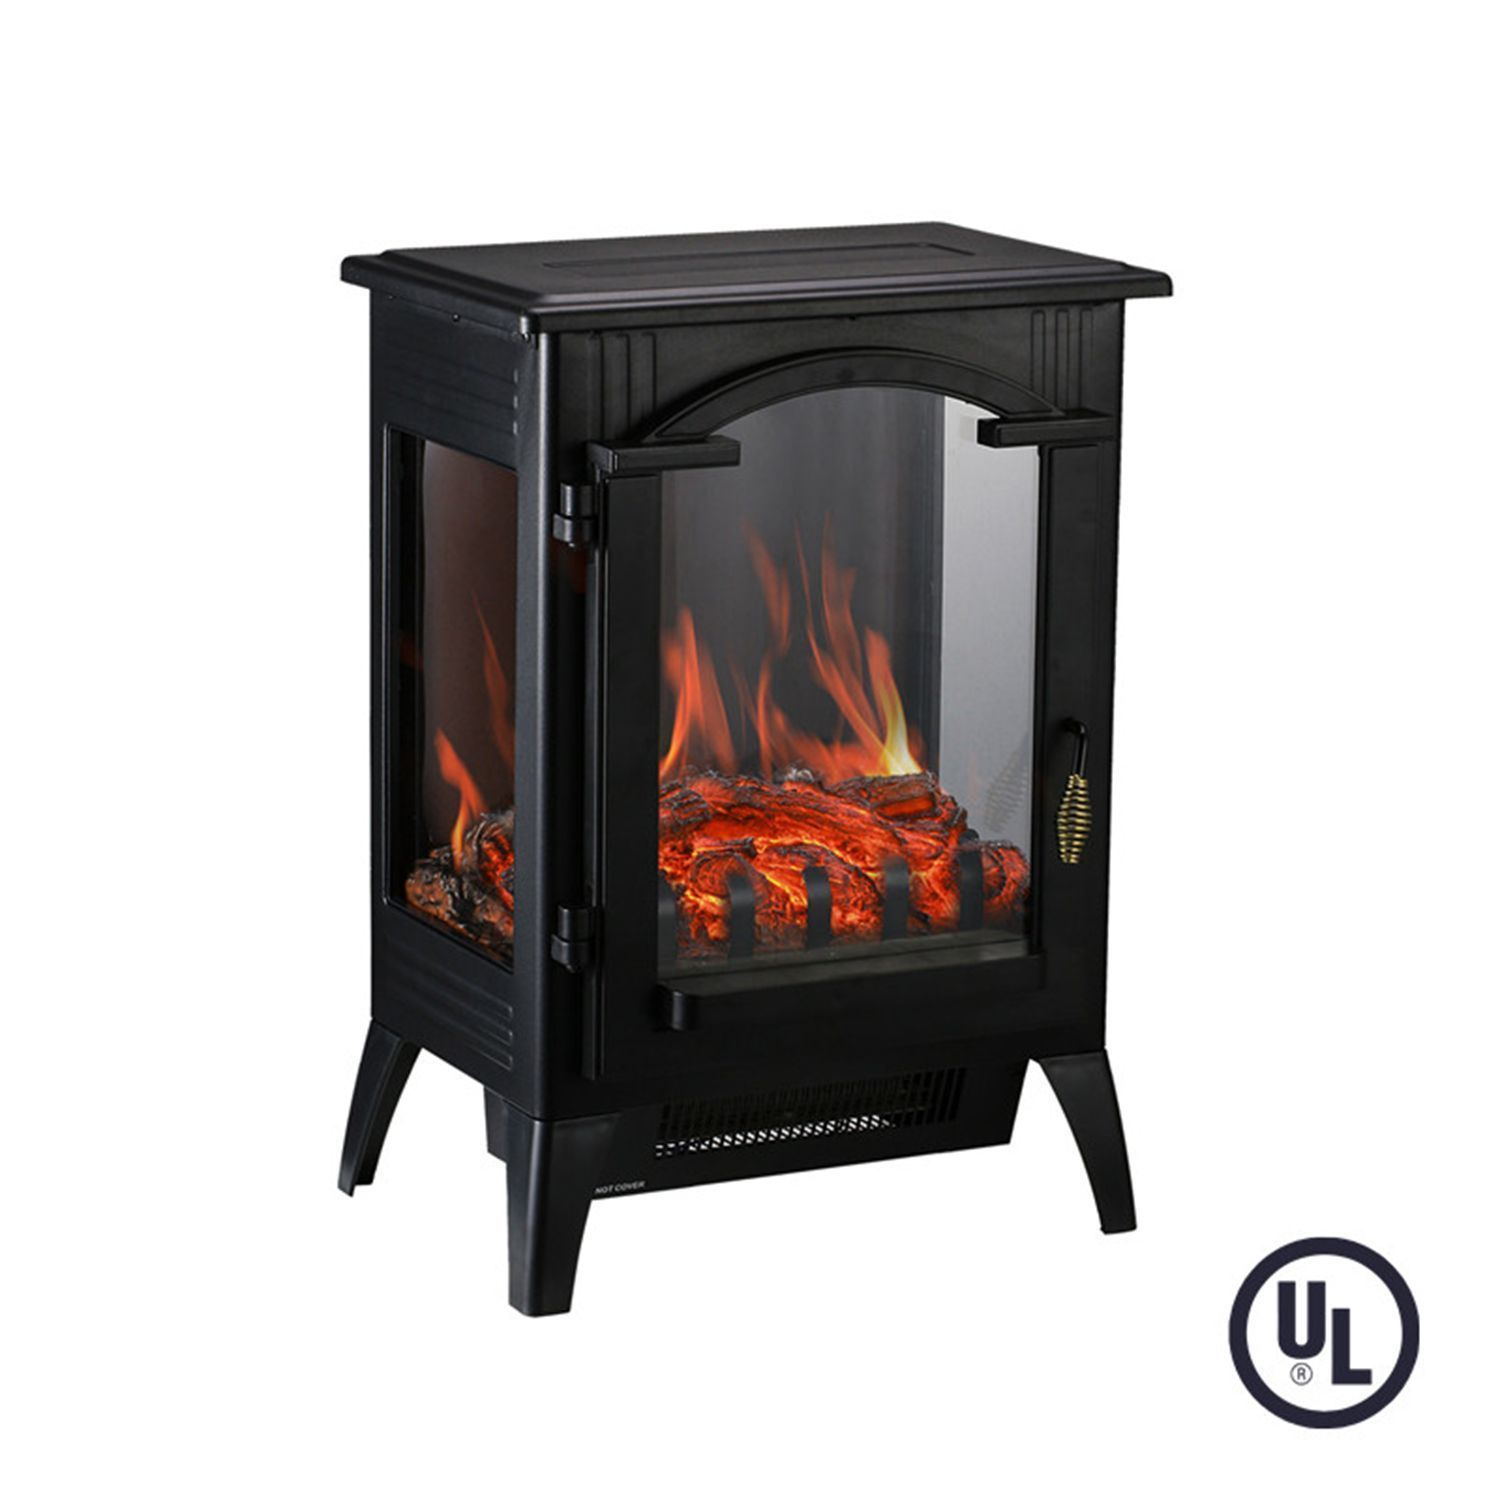 Portable Indoor Home Compact Electric Wood Stove Fireplace Heater With Thermostat For Office In 2020 Electric Wood Stove Freestanding Fireplace Wood Stove Fireplace